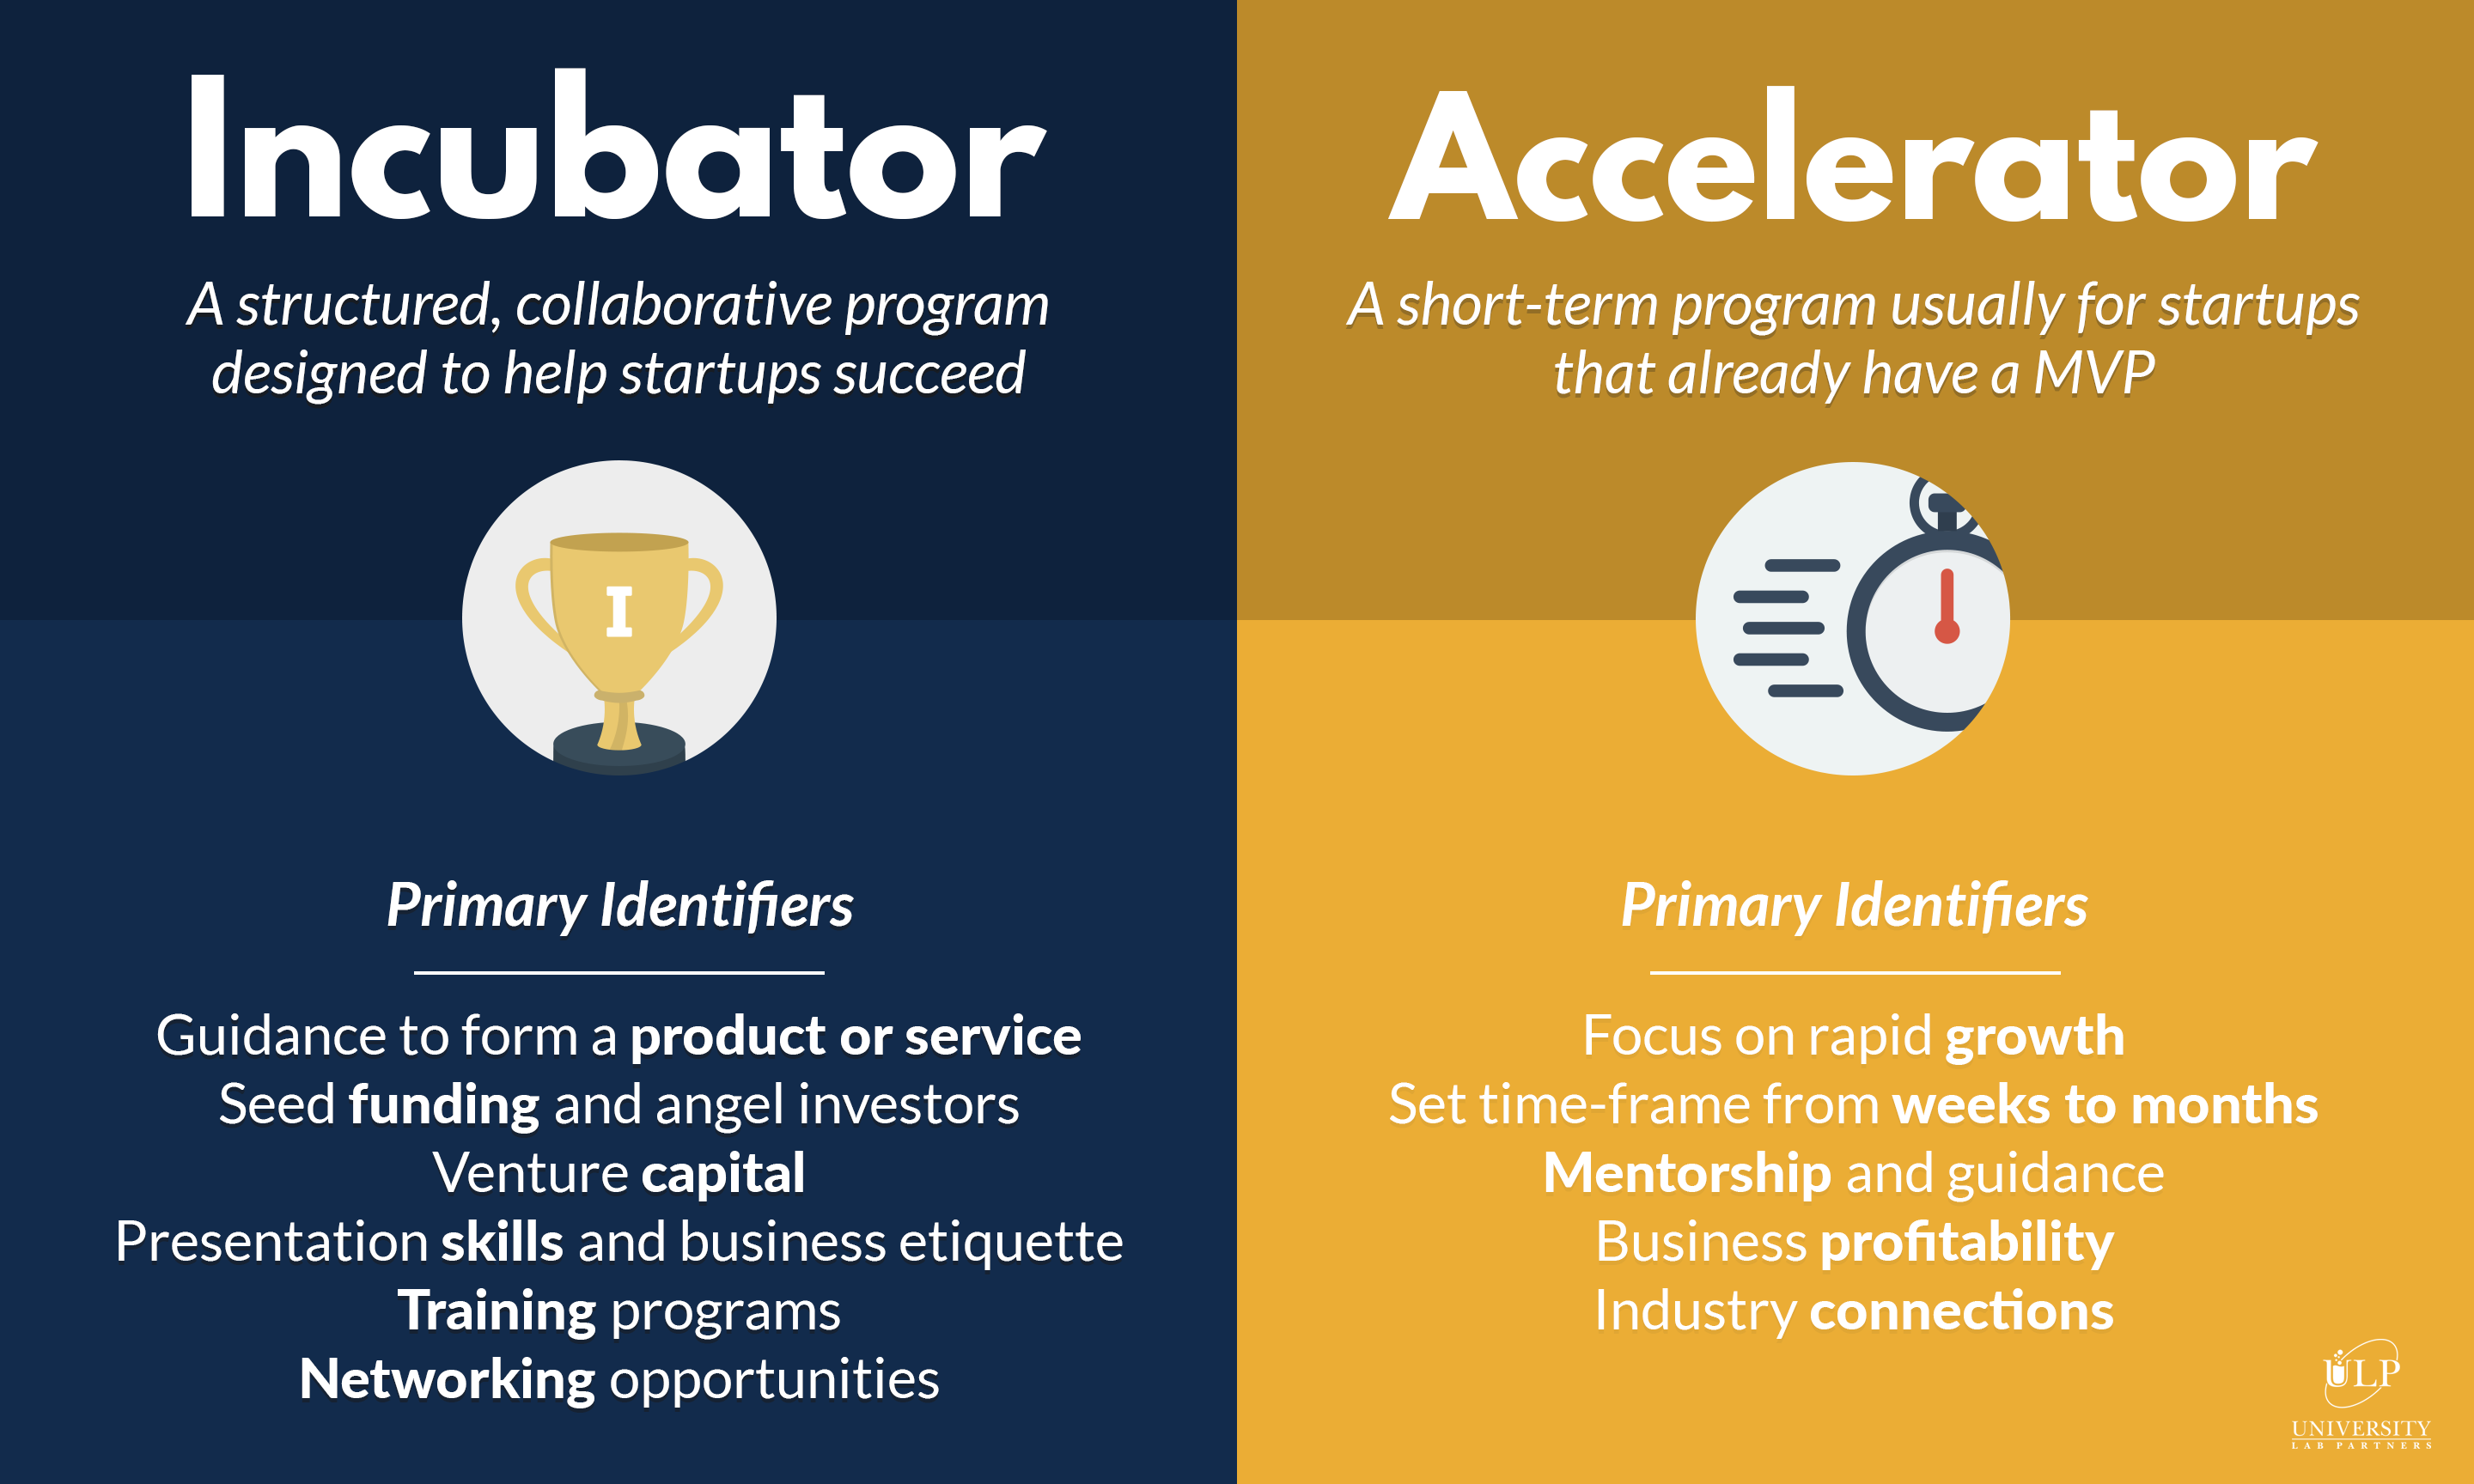 incubator and accelerator infographic